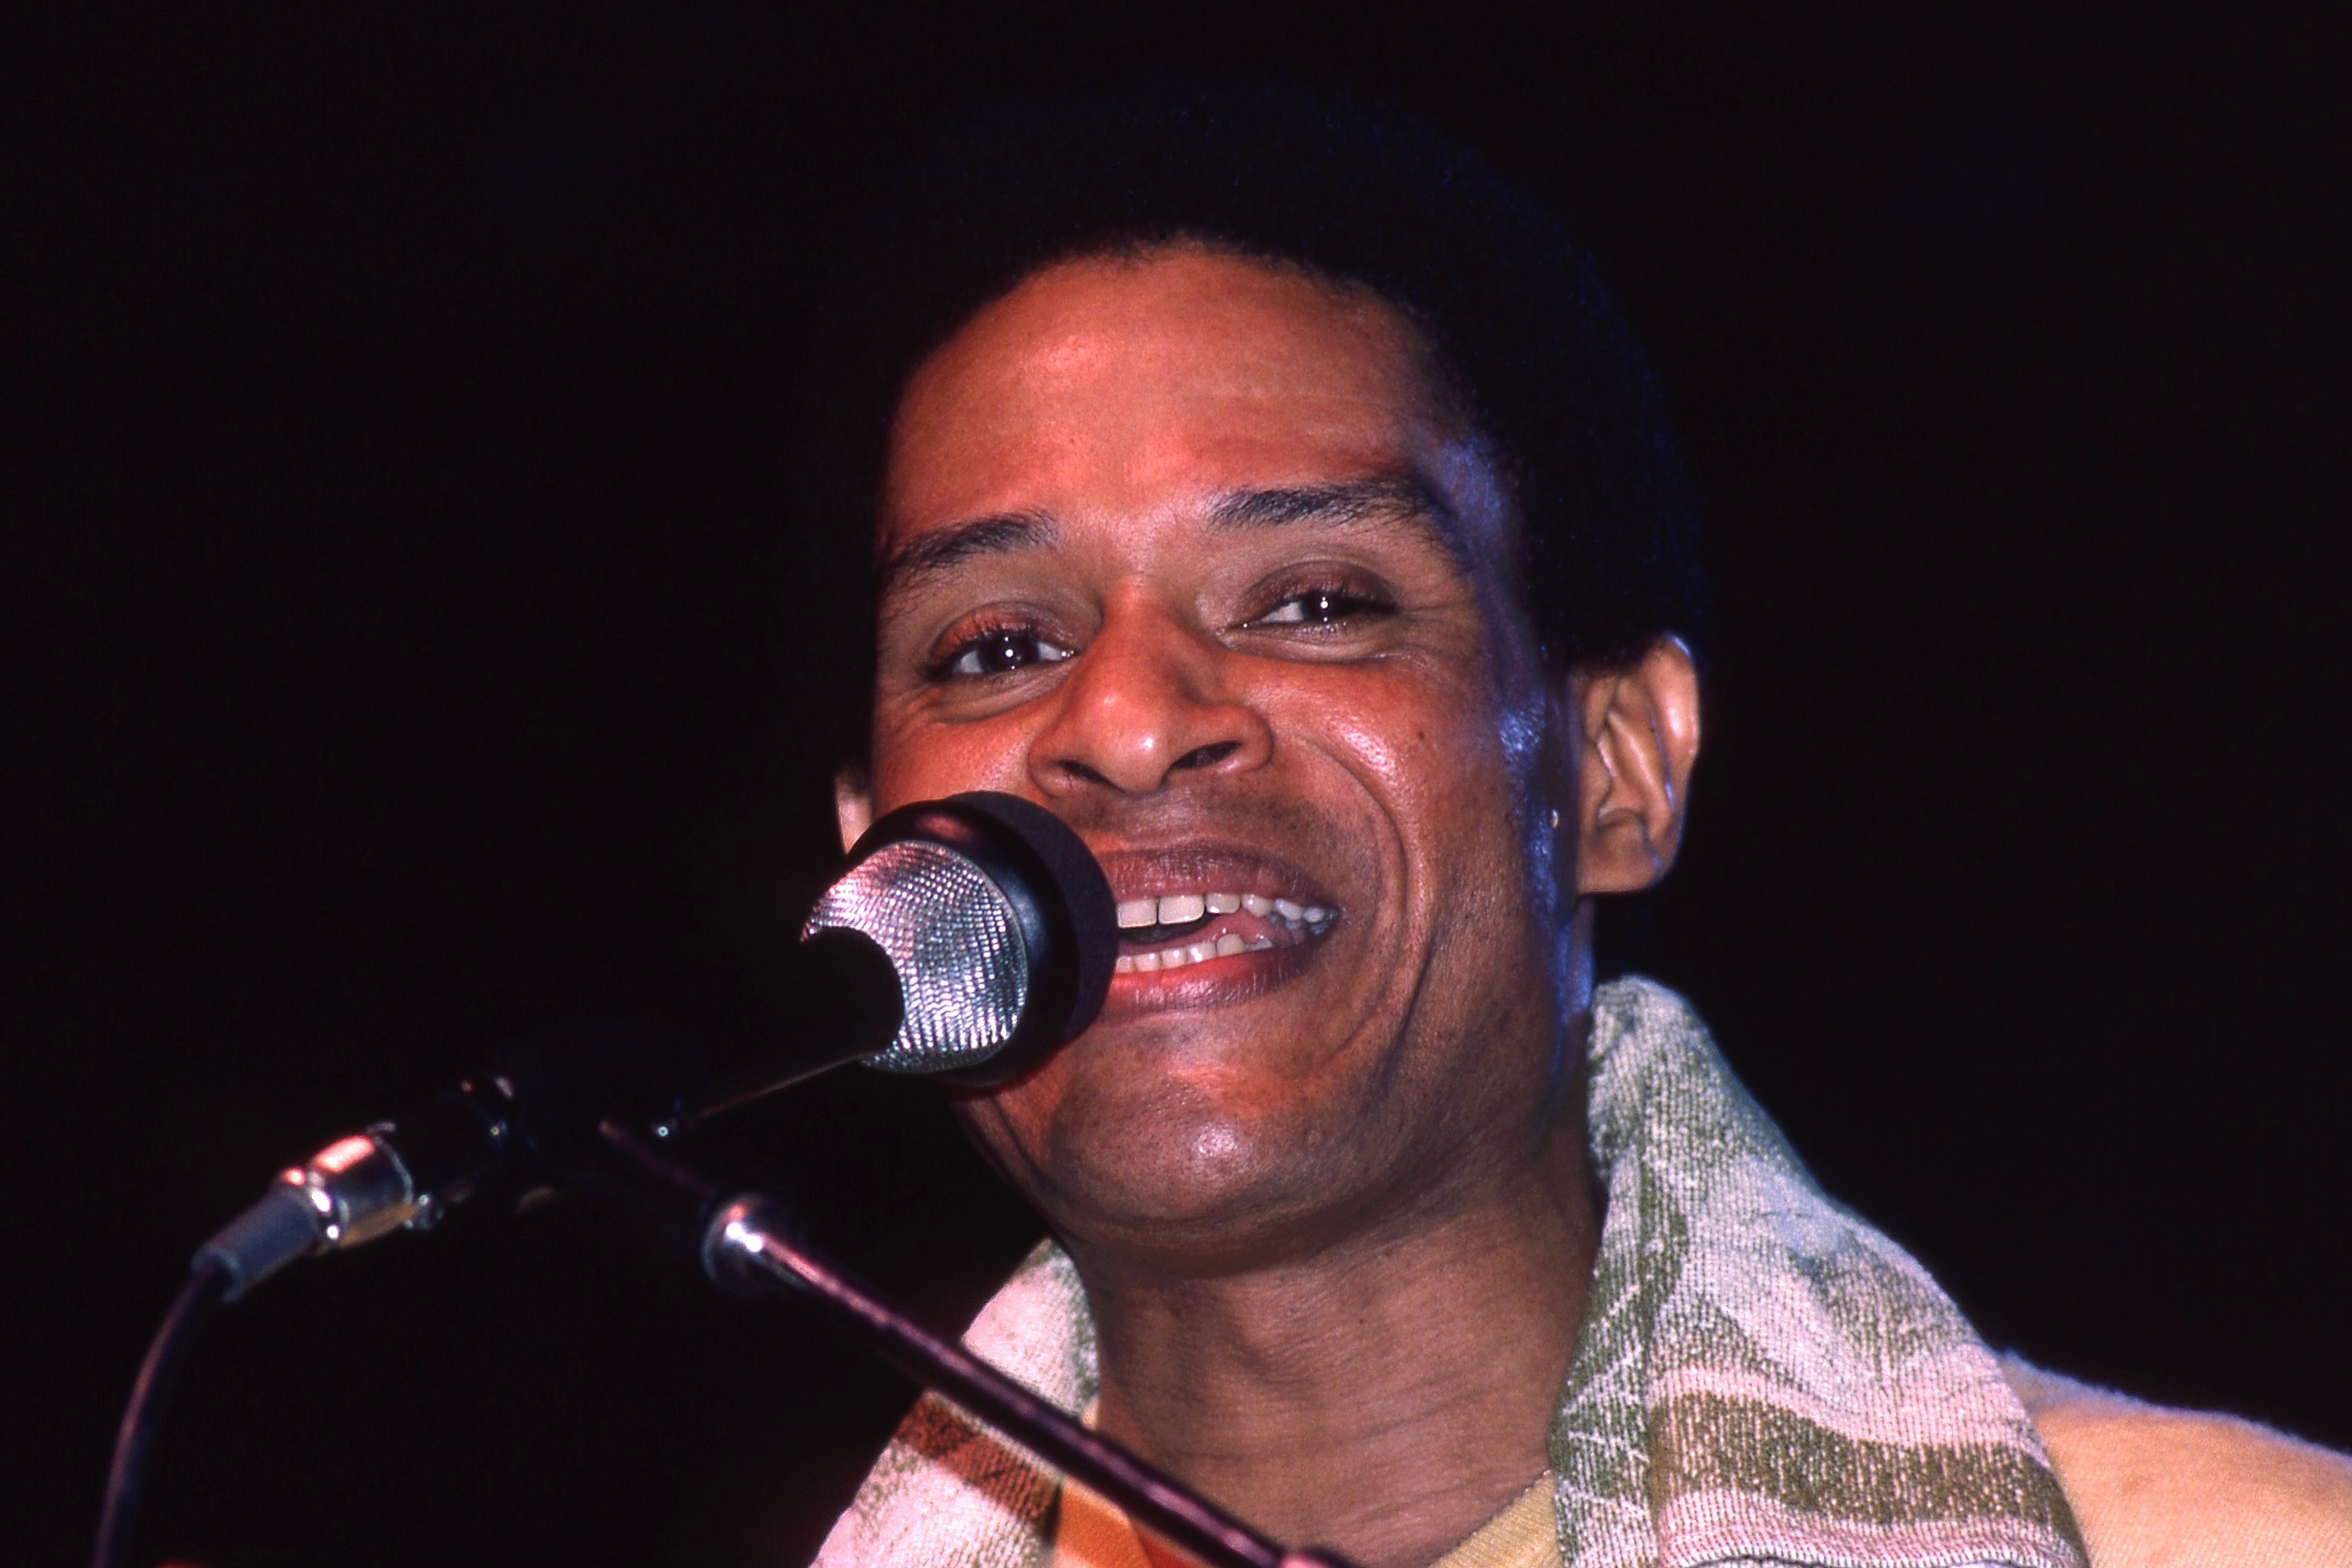 The 78-year old son of father (?) and mother(?) Al Jarreau in 2019 photo. Al Jarreau earned a  million dollar salary - leaving the net worth at 14 million in 2019